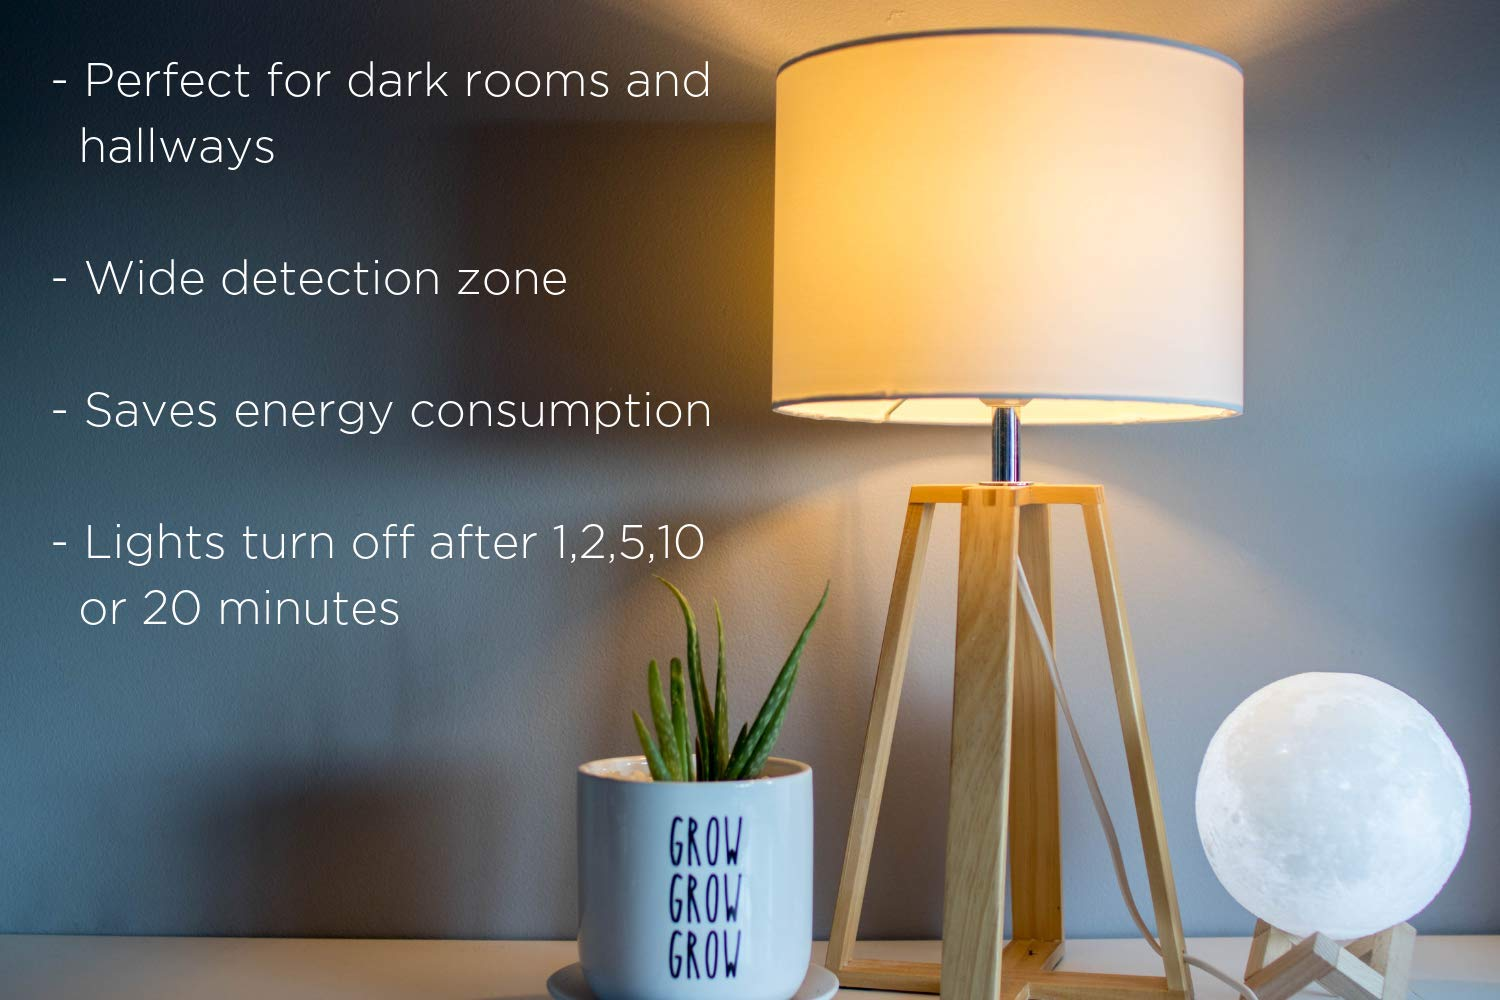 Motion Activated Light Control – Outlet Plug-in Device Turns On Your Indoor Lamp Lights When Movement Is Detected – LED Compatible, Ideal For Dark Rooms, Hallways – 25ft Detection, 6 Foot Cord by WESTEK (Image #4)